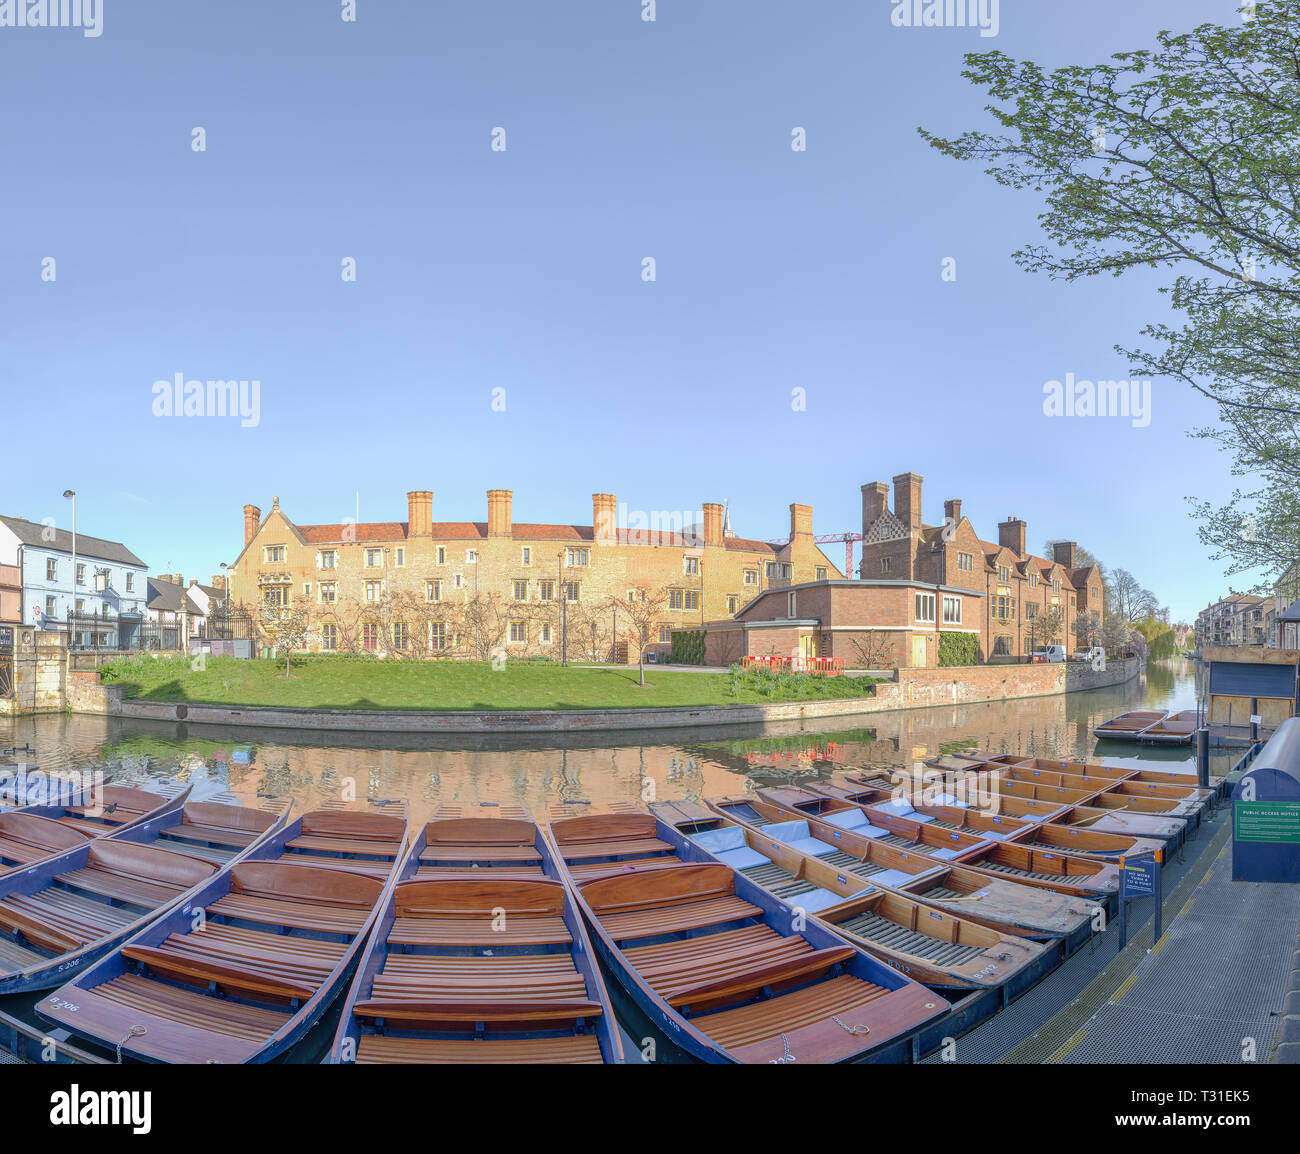 Sunshine on Magdalene college reflected in the river Cam on a sunny spring day at the university of Cambridge, England, with moored punts on the nears - Stock Image